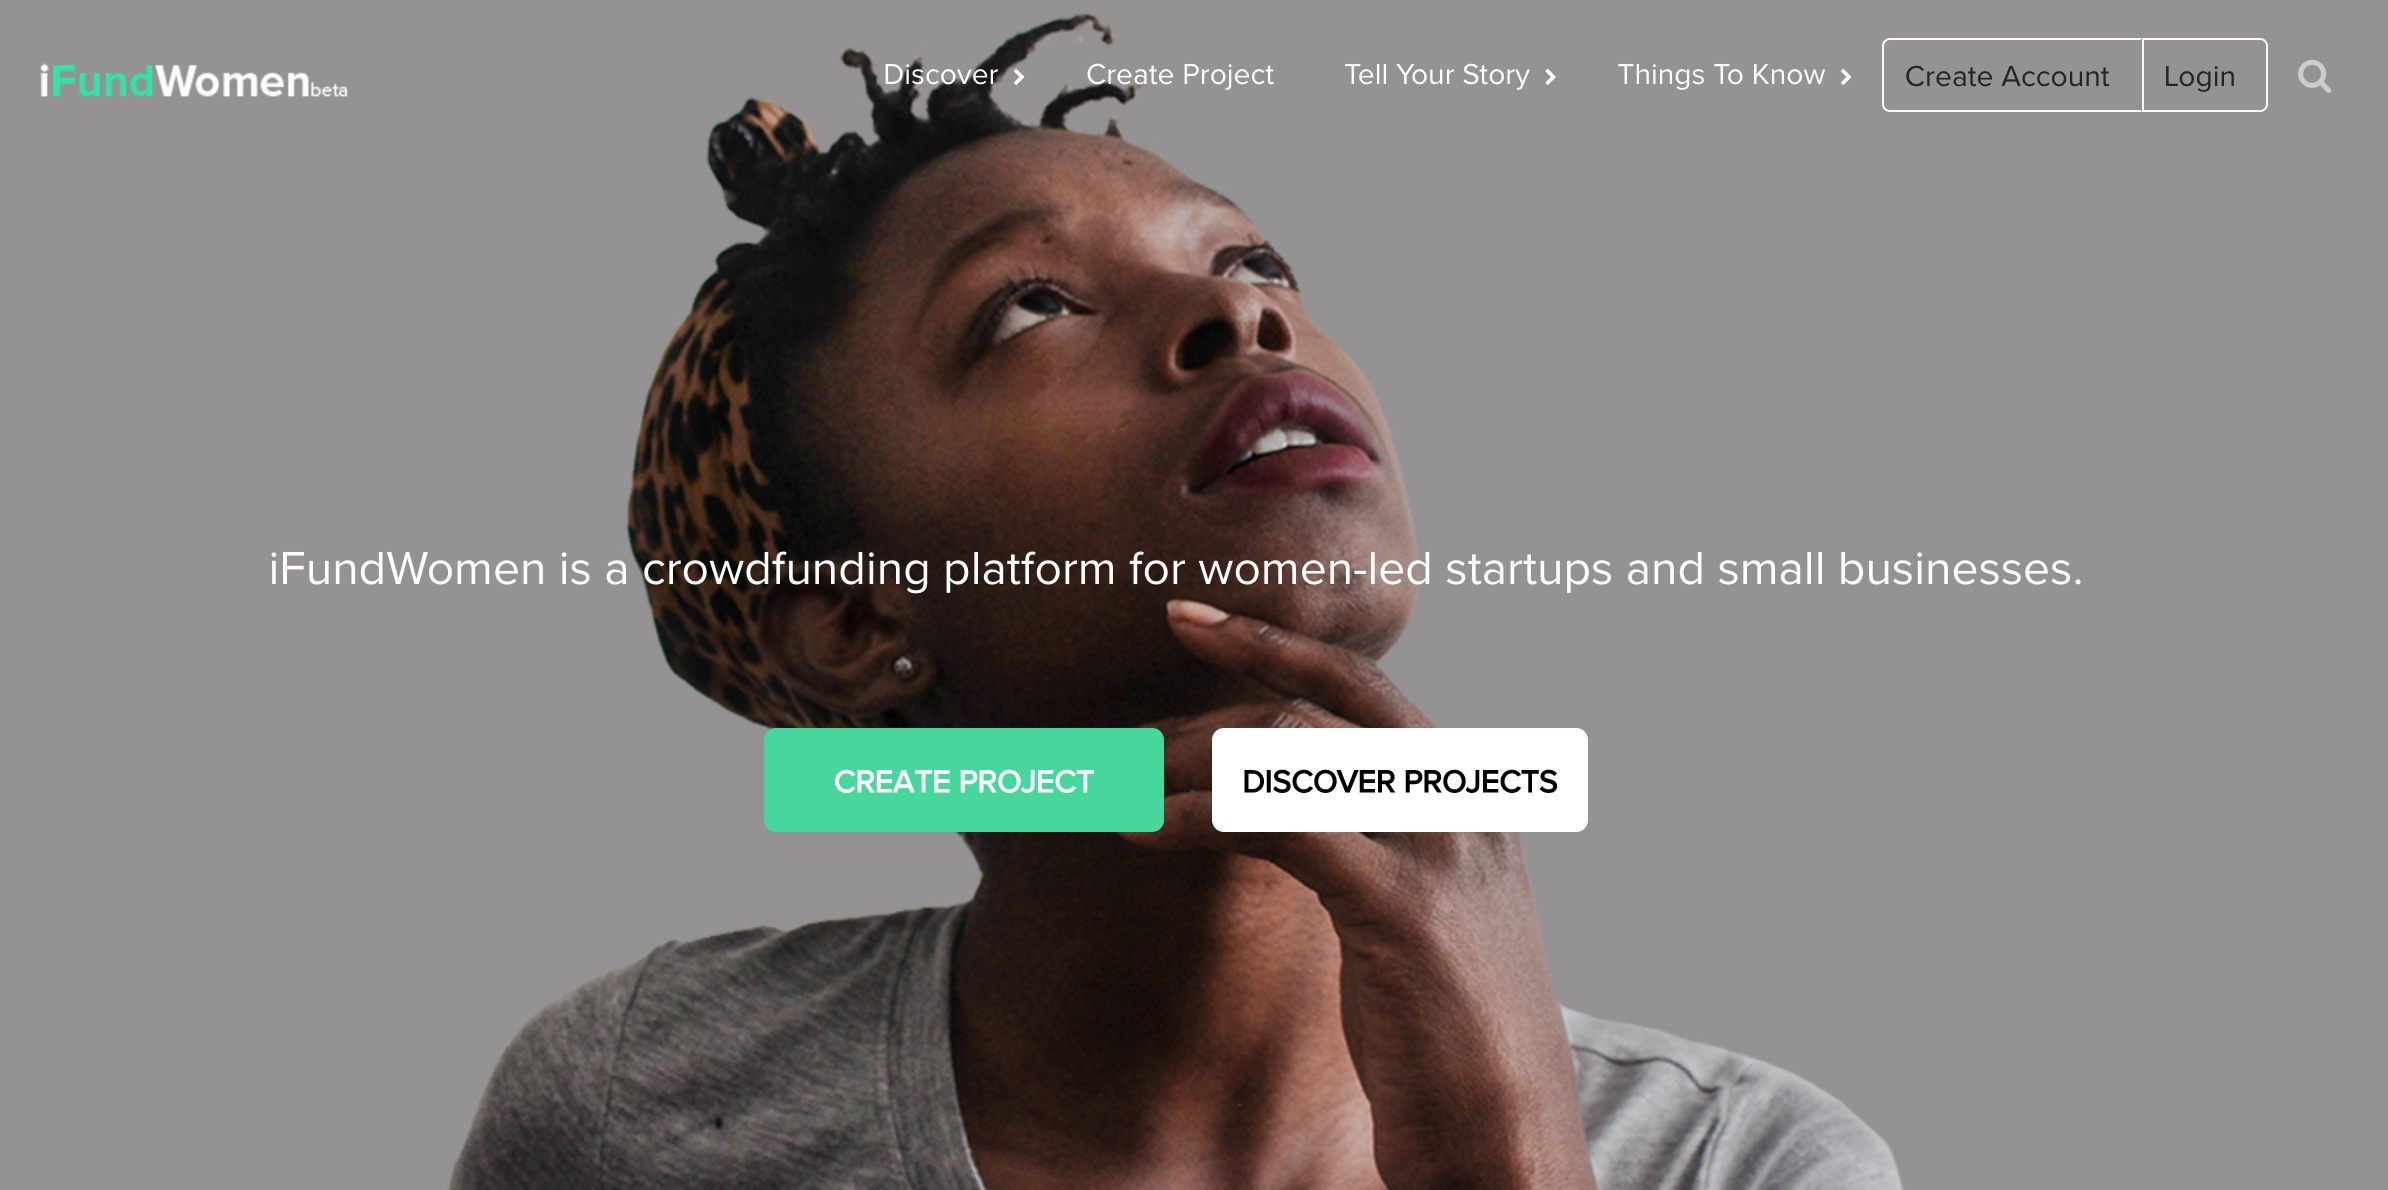 ifund women: A brilliant new crowdsourcing site exclusively for women-run startups and initiatives